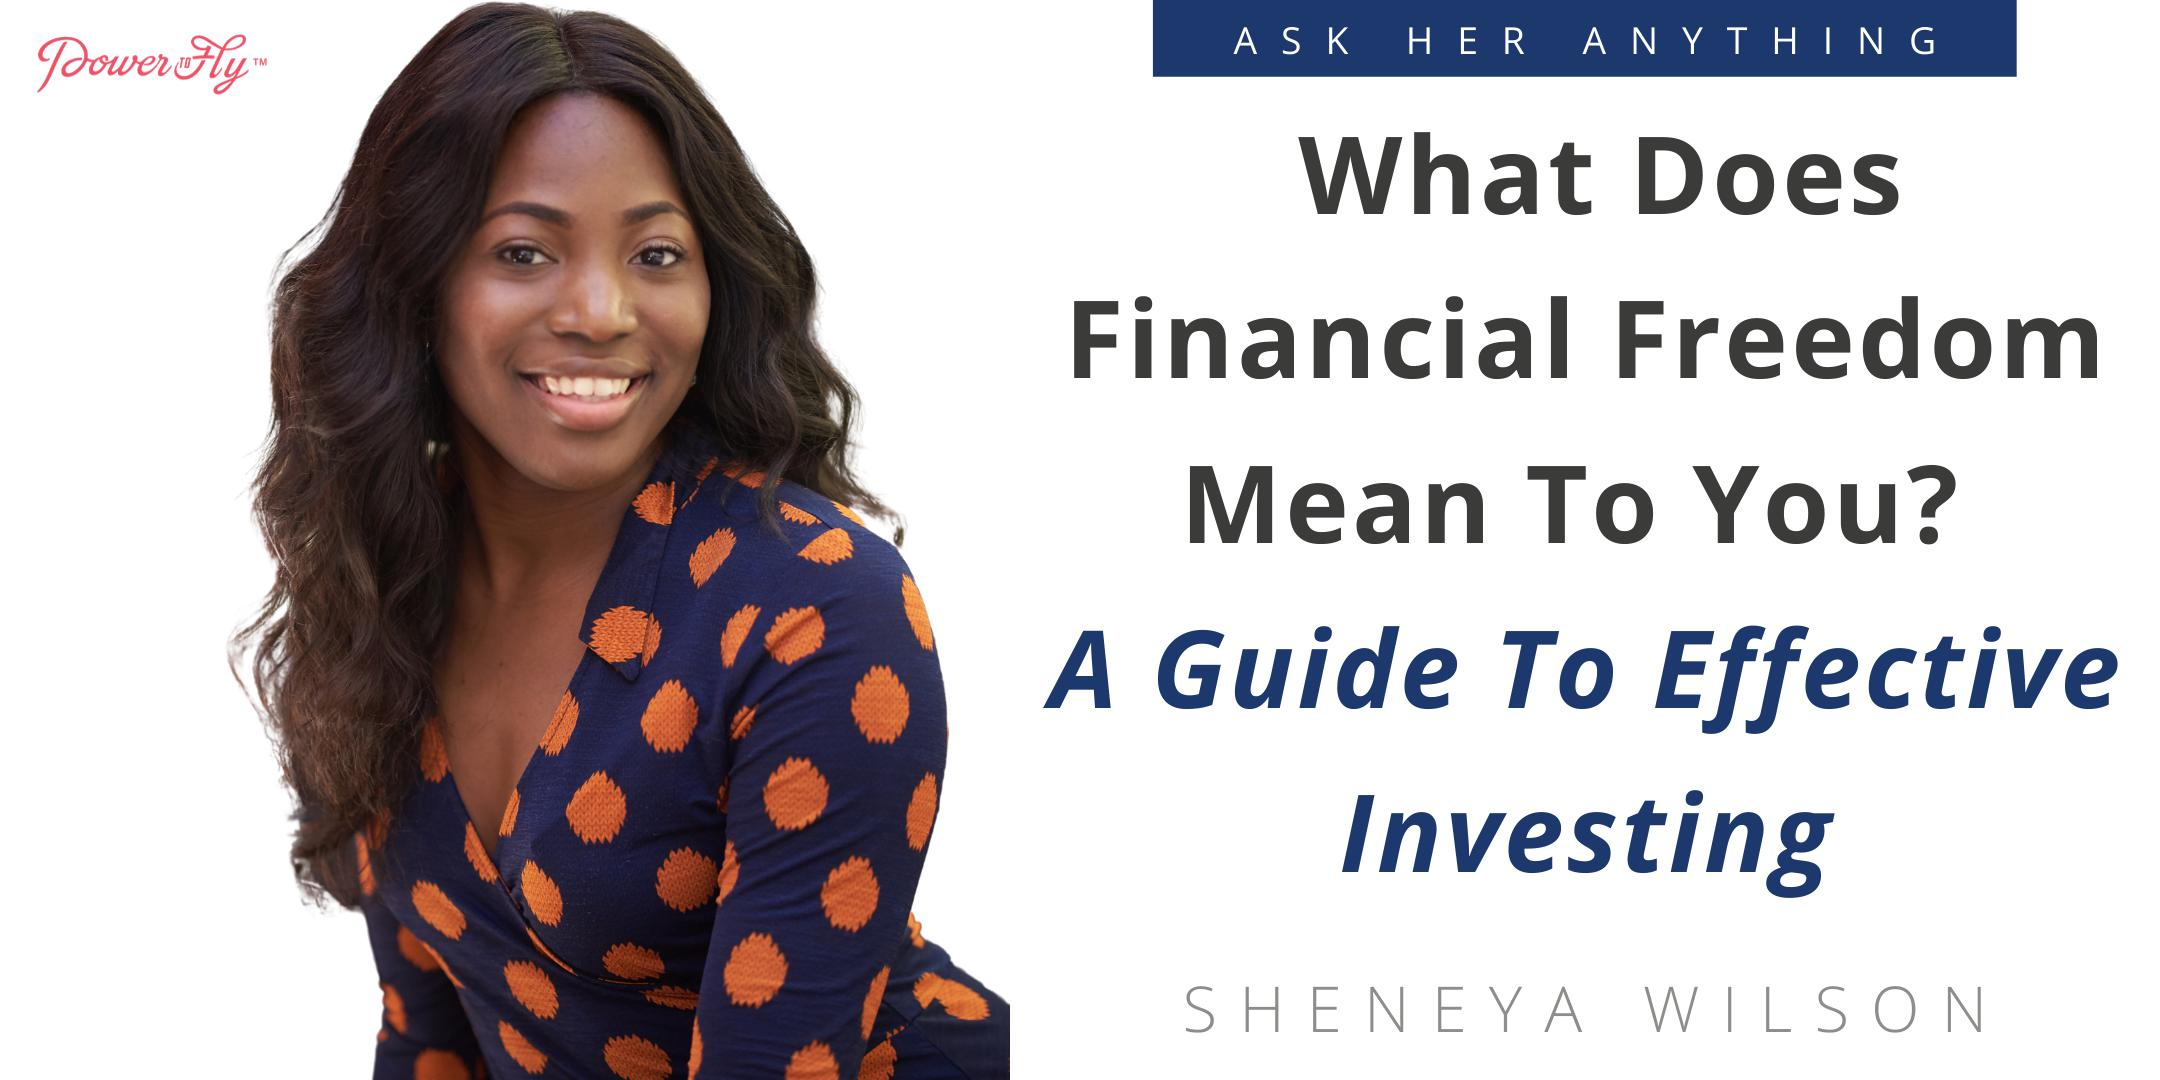 What Does Financial Freedom Mean To You? A Guide To Effective Investing